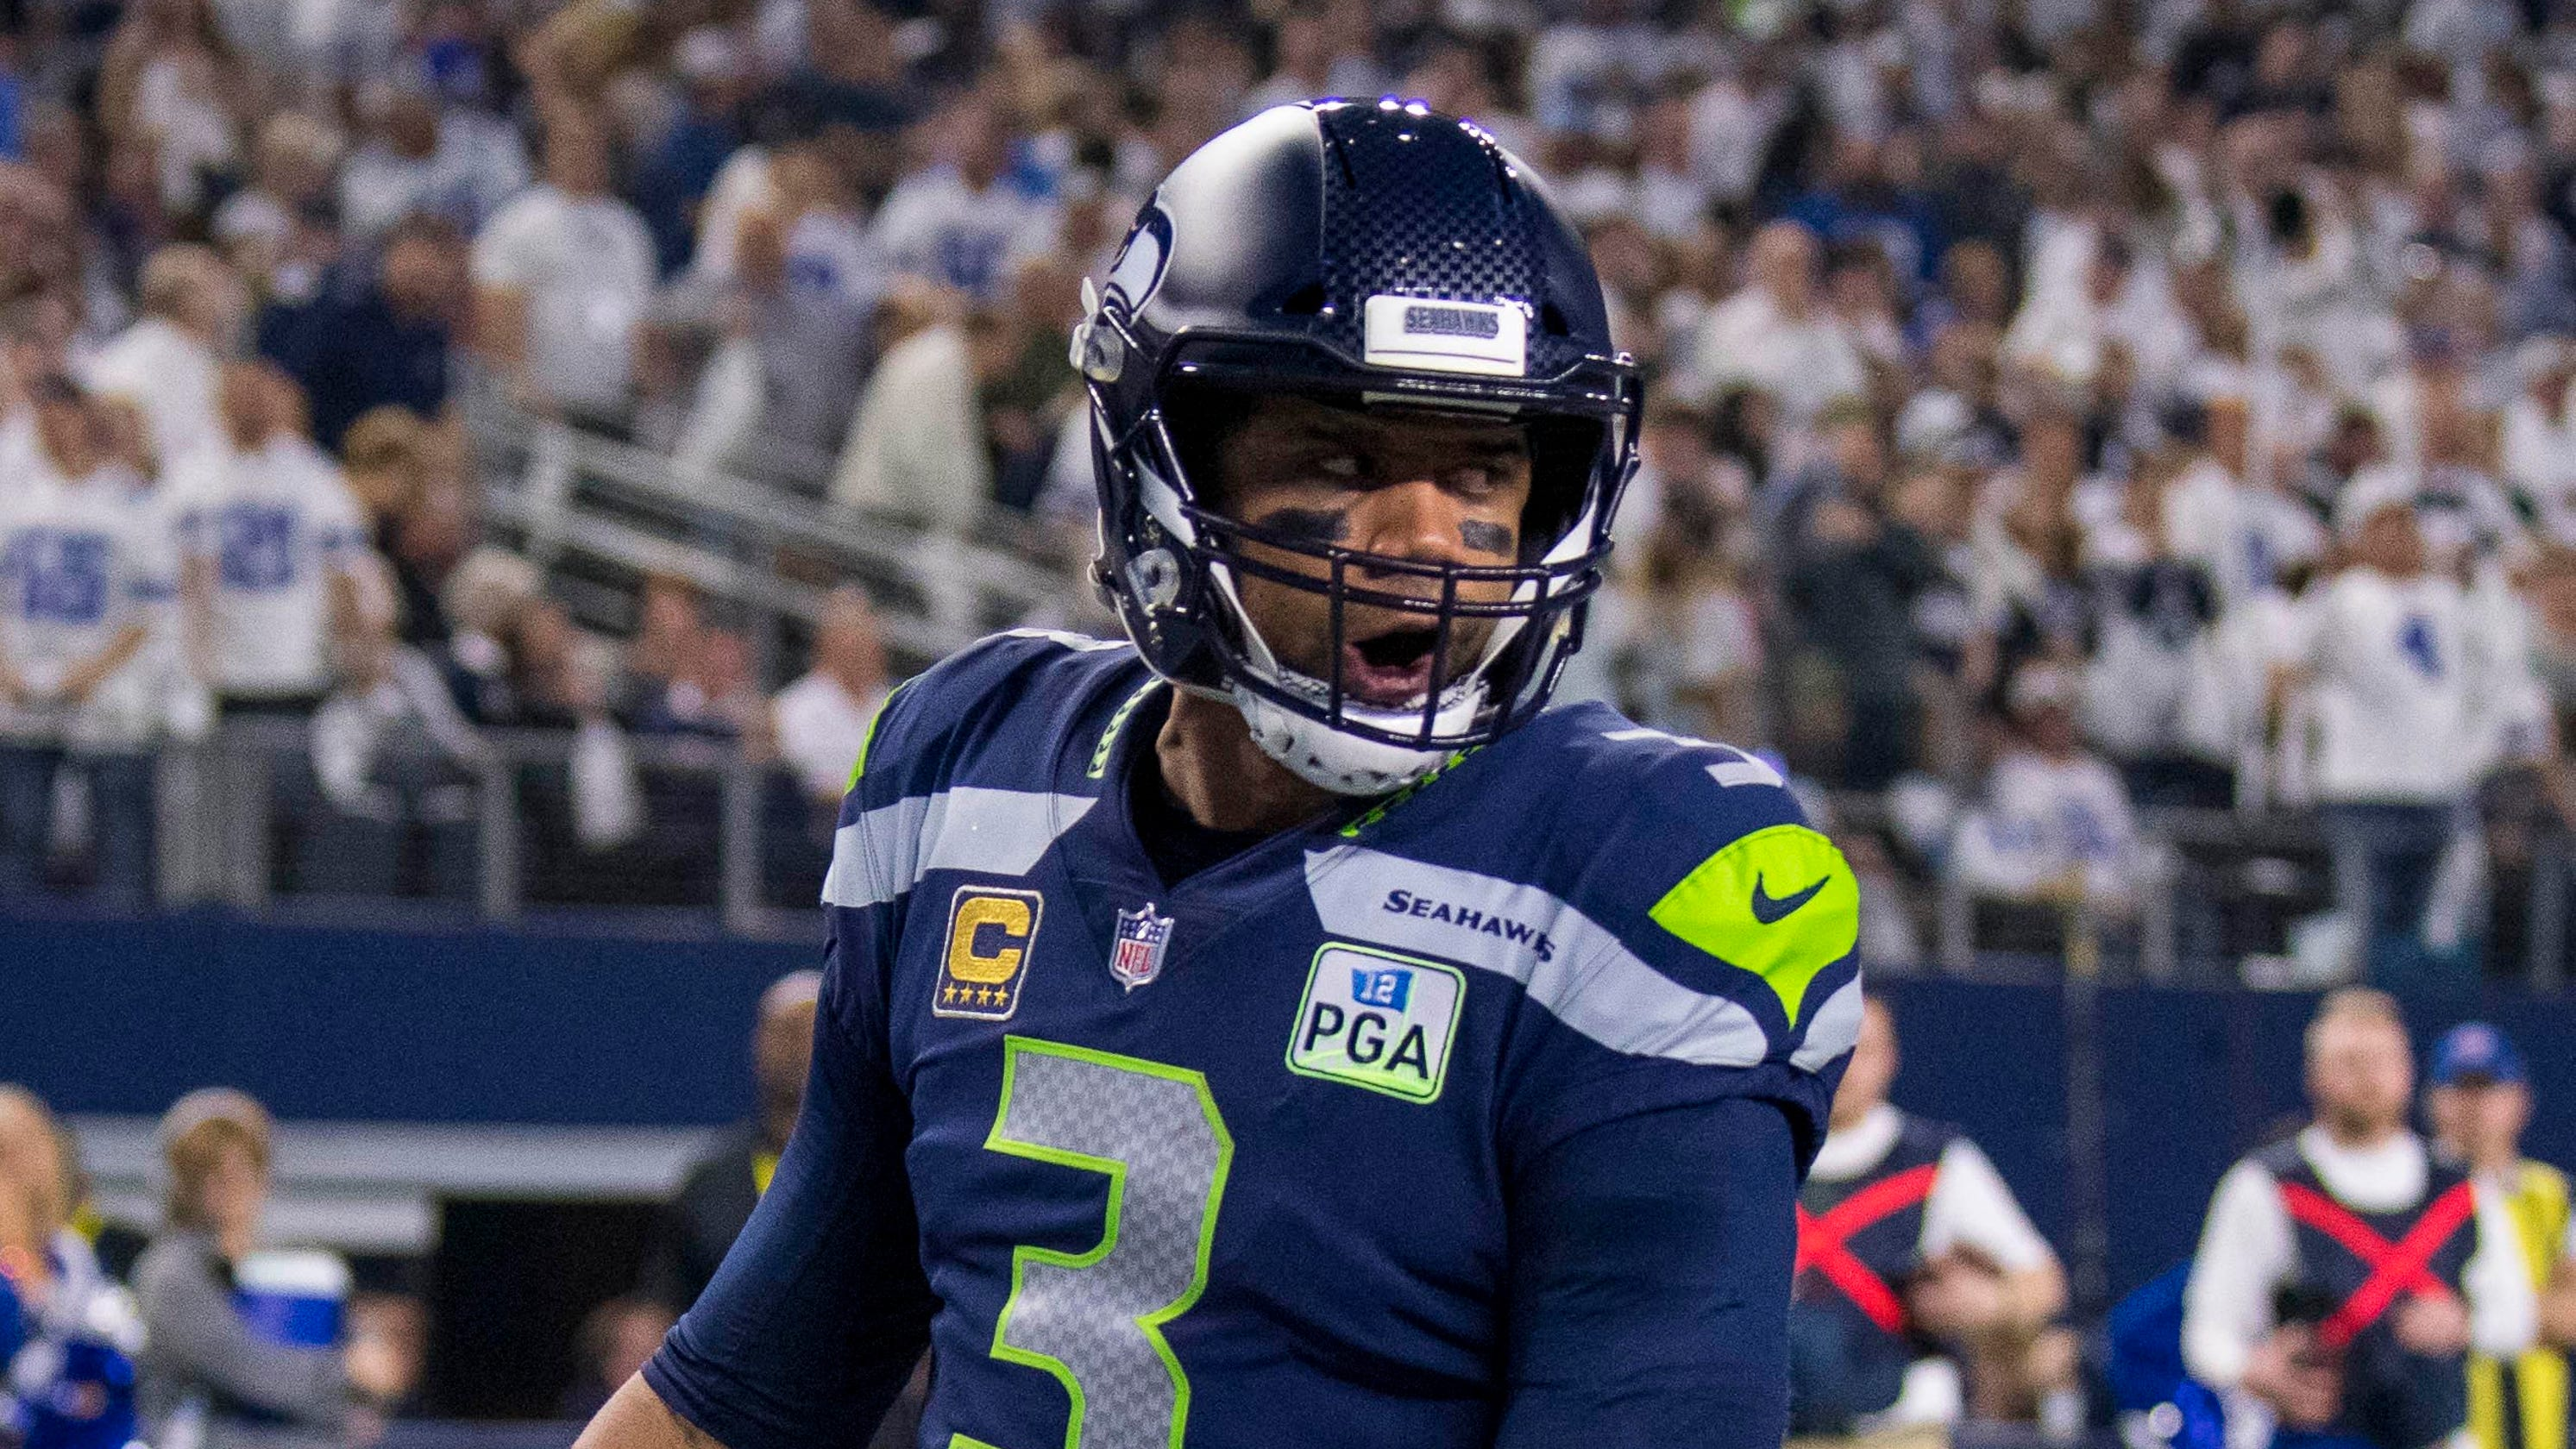 54ac766b68c Seahawks' Russell Wilson announces contract, to become NFL's top paid